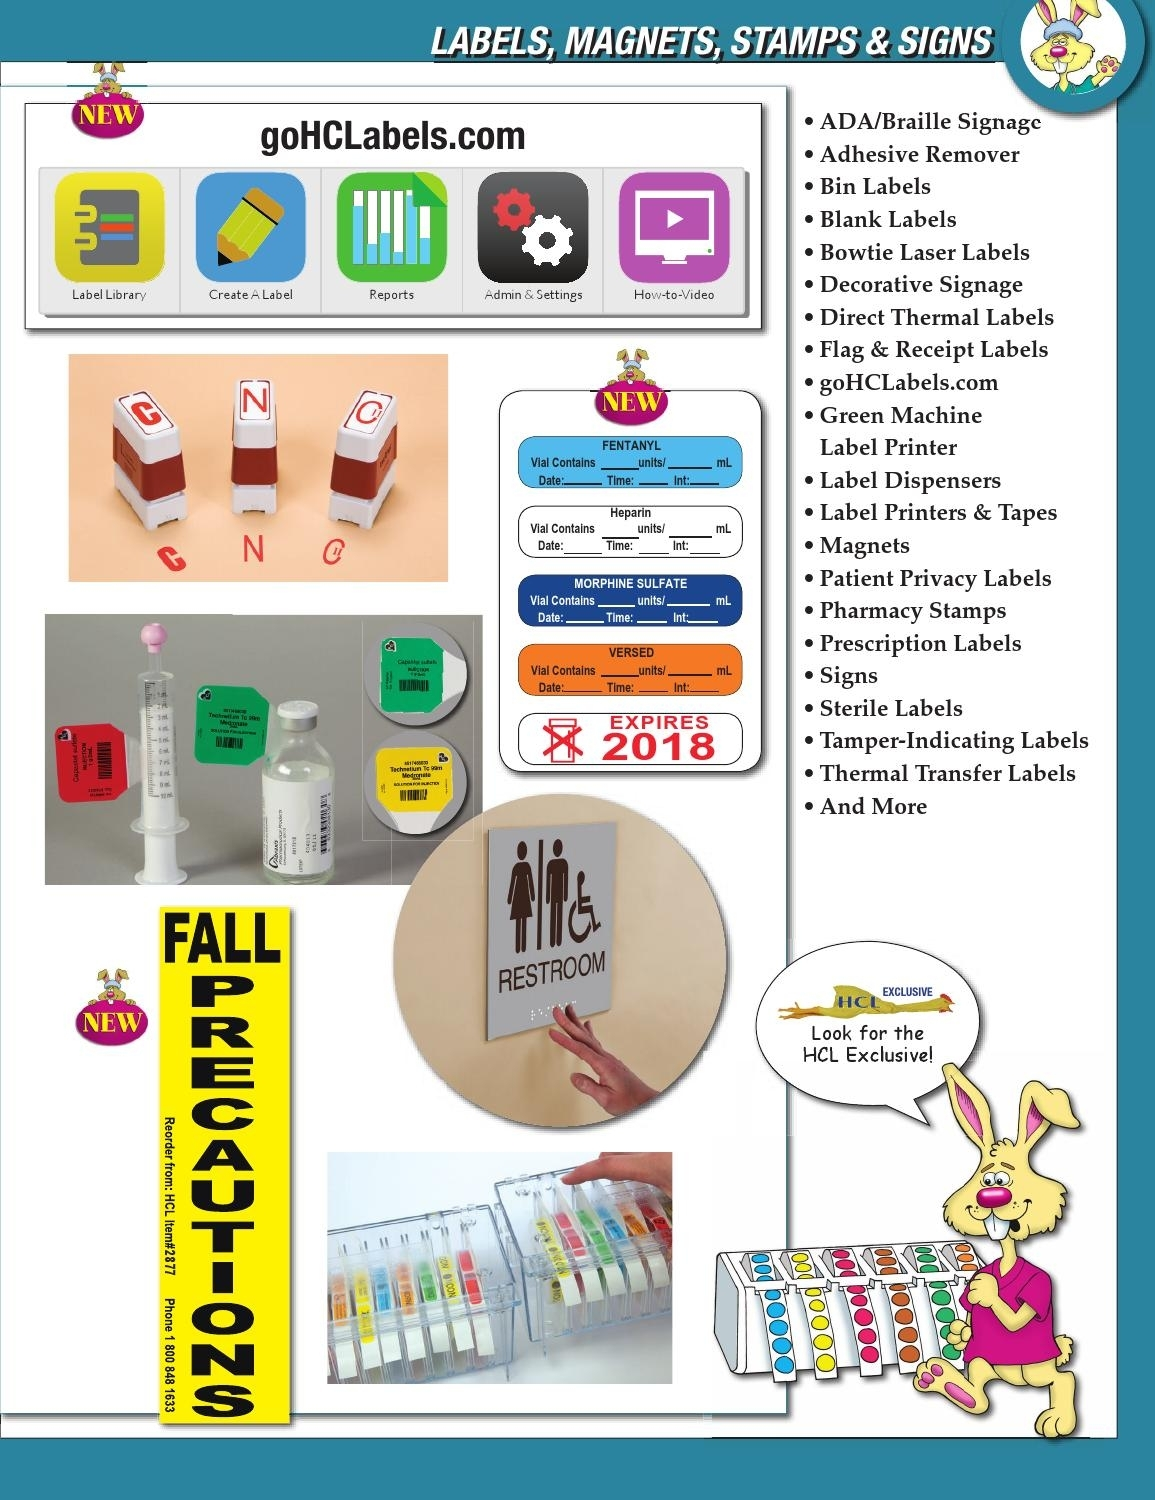 Ether Bunny - Labels, Magnets, Stamps & Signs By Health Care